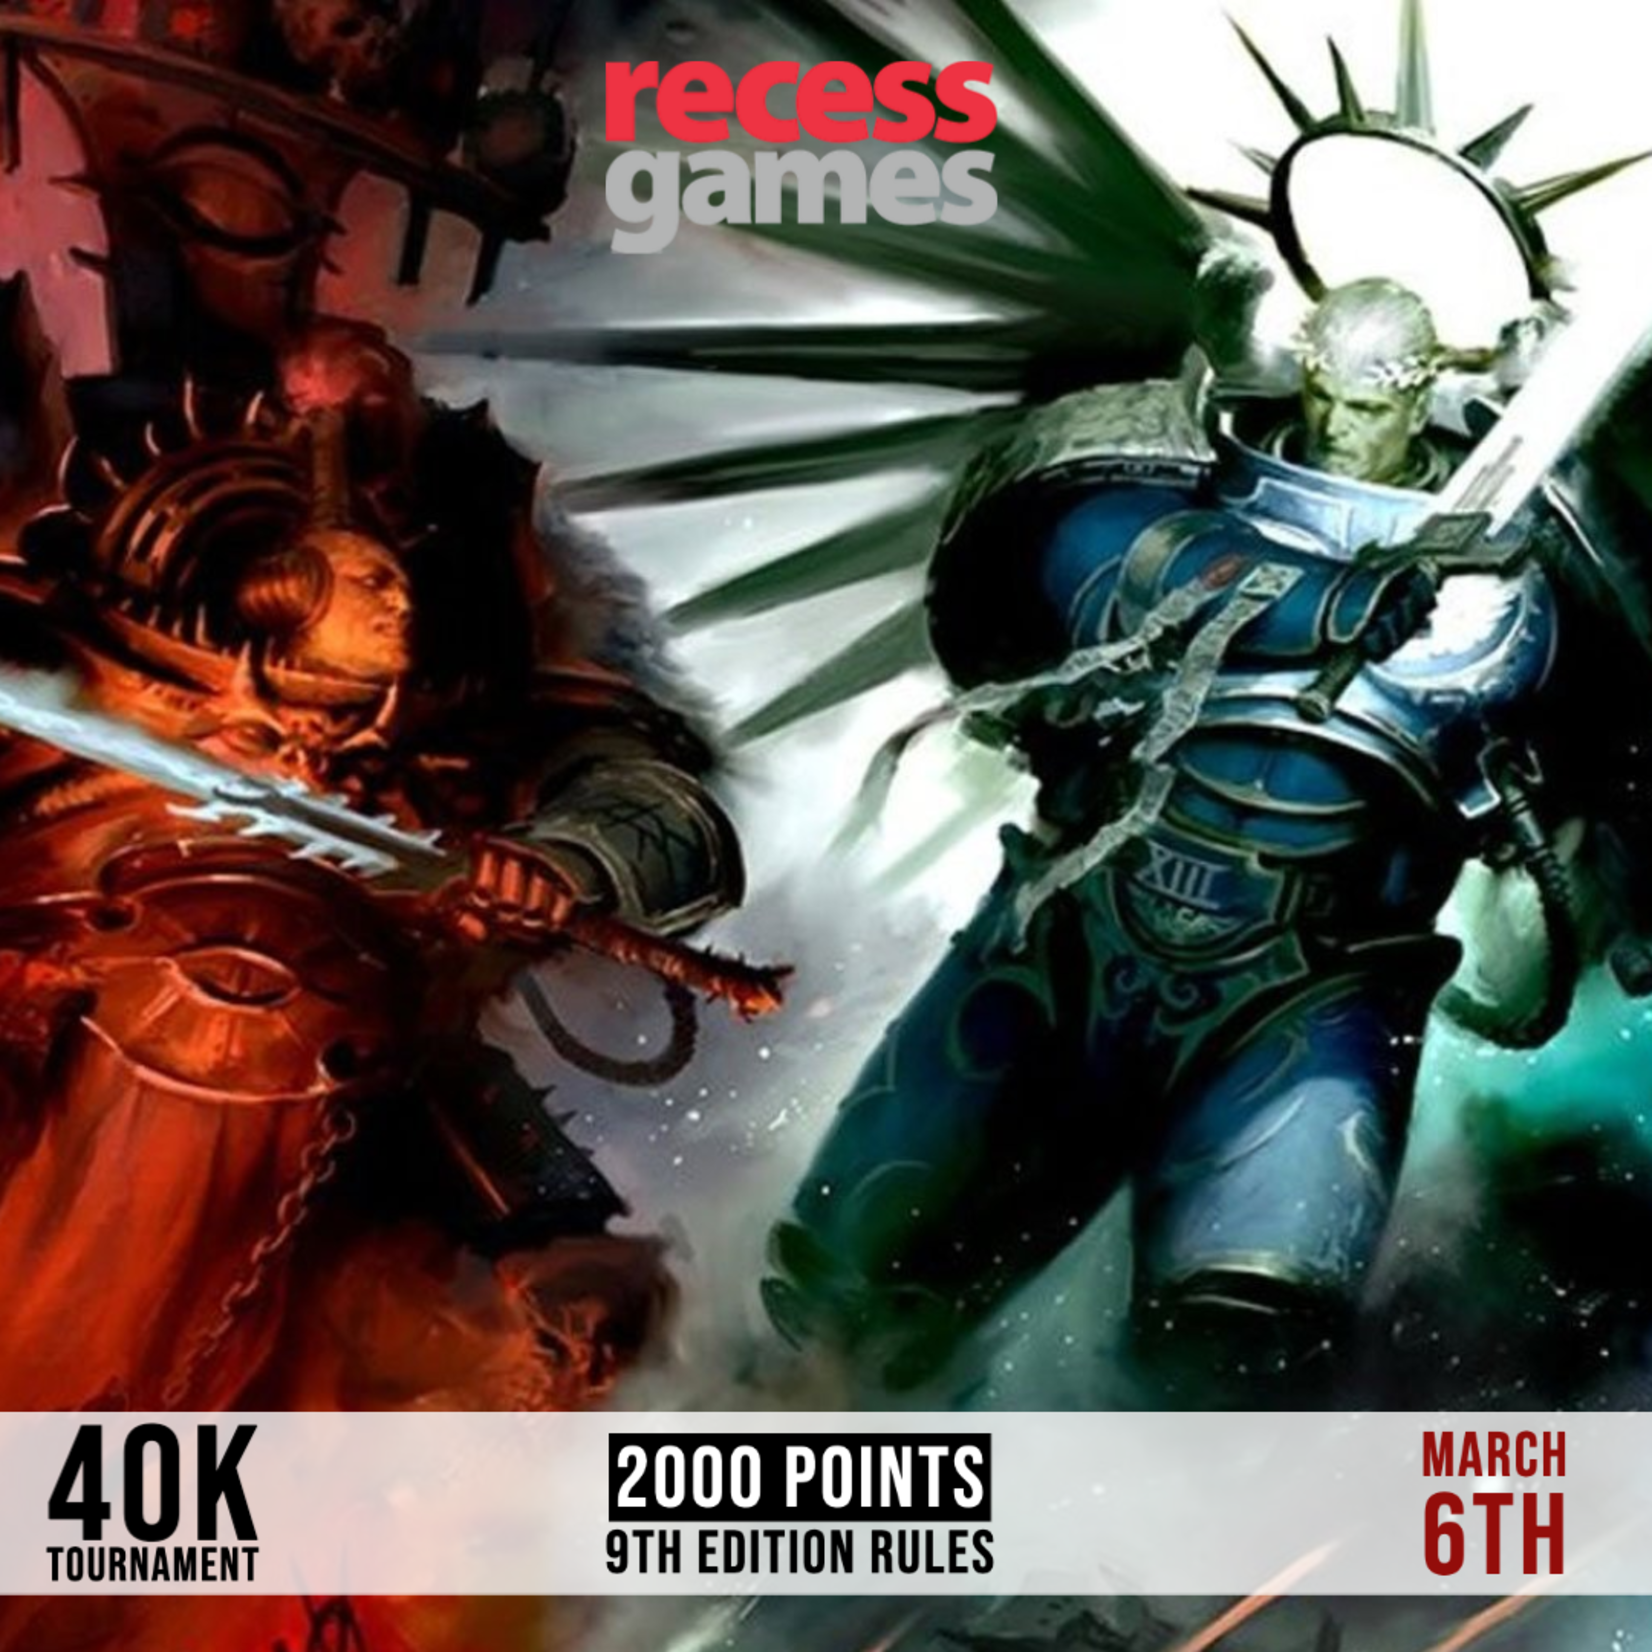 Recess 40k Tournament - March 6, 2021